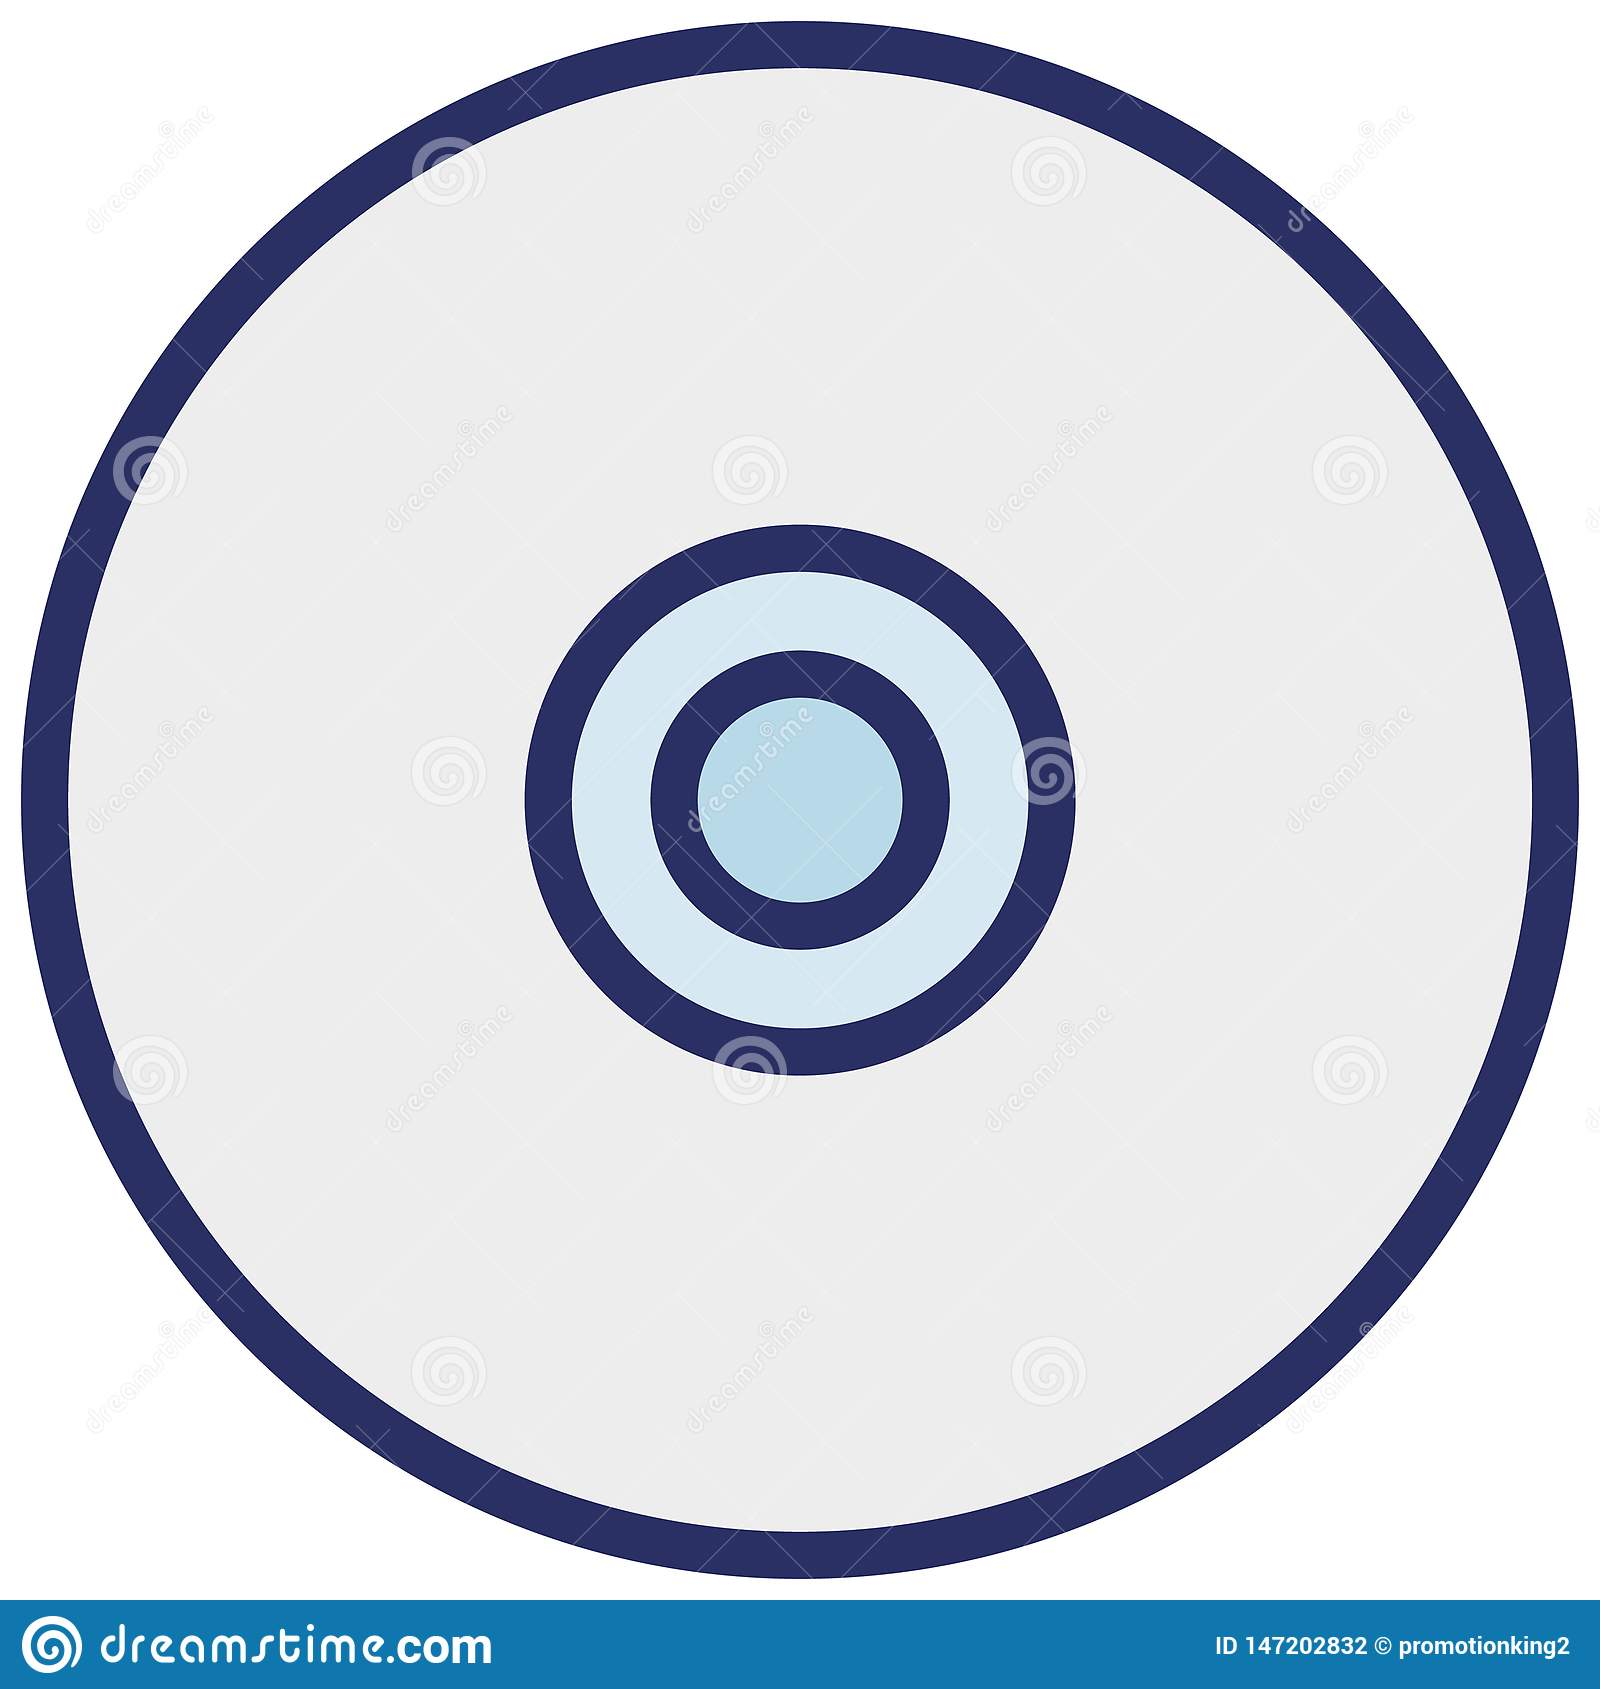 Cd Isolated Vector Icon which can easily modify or edit